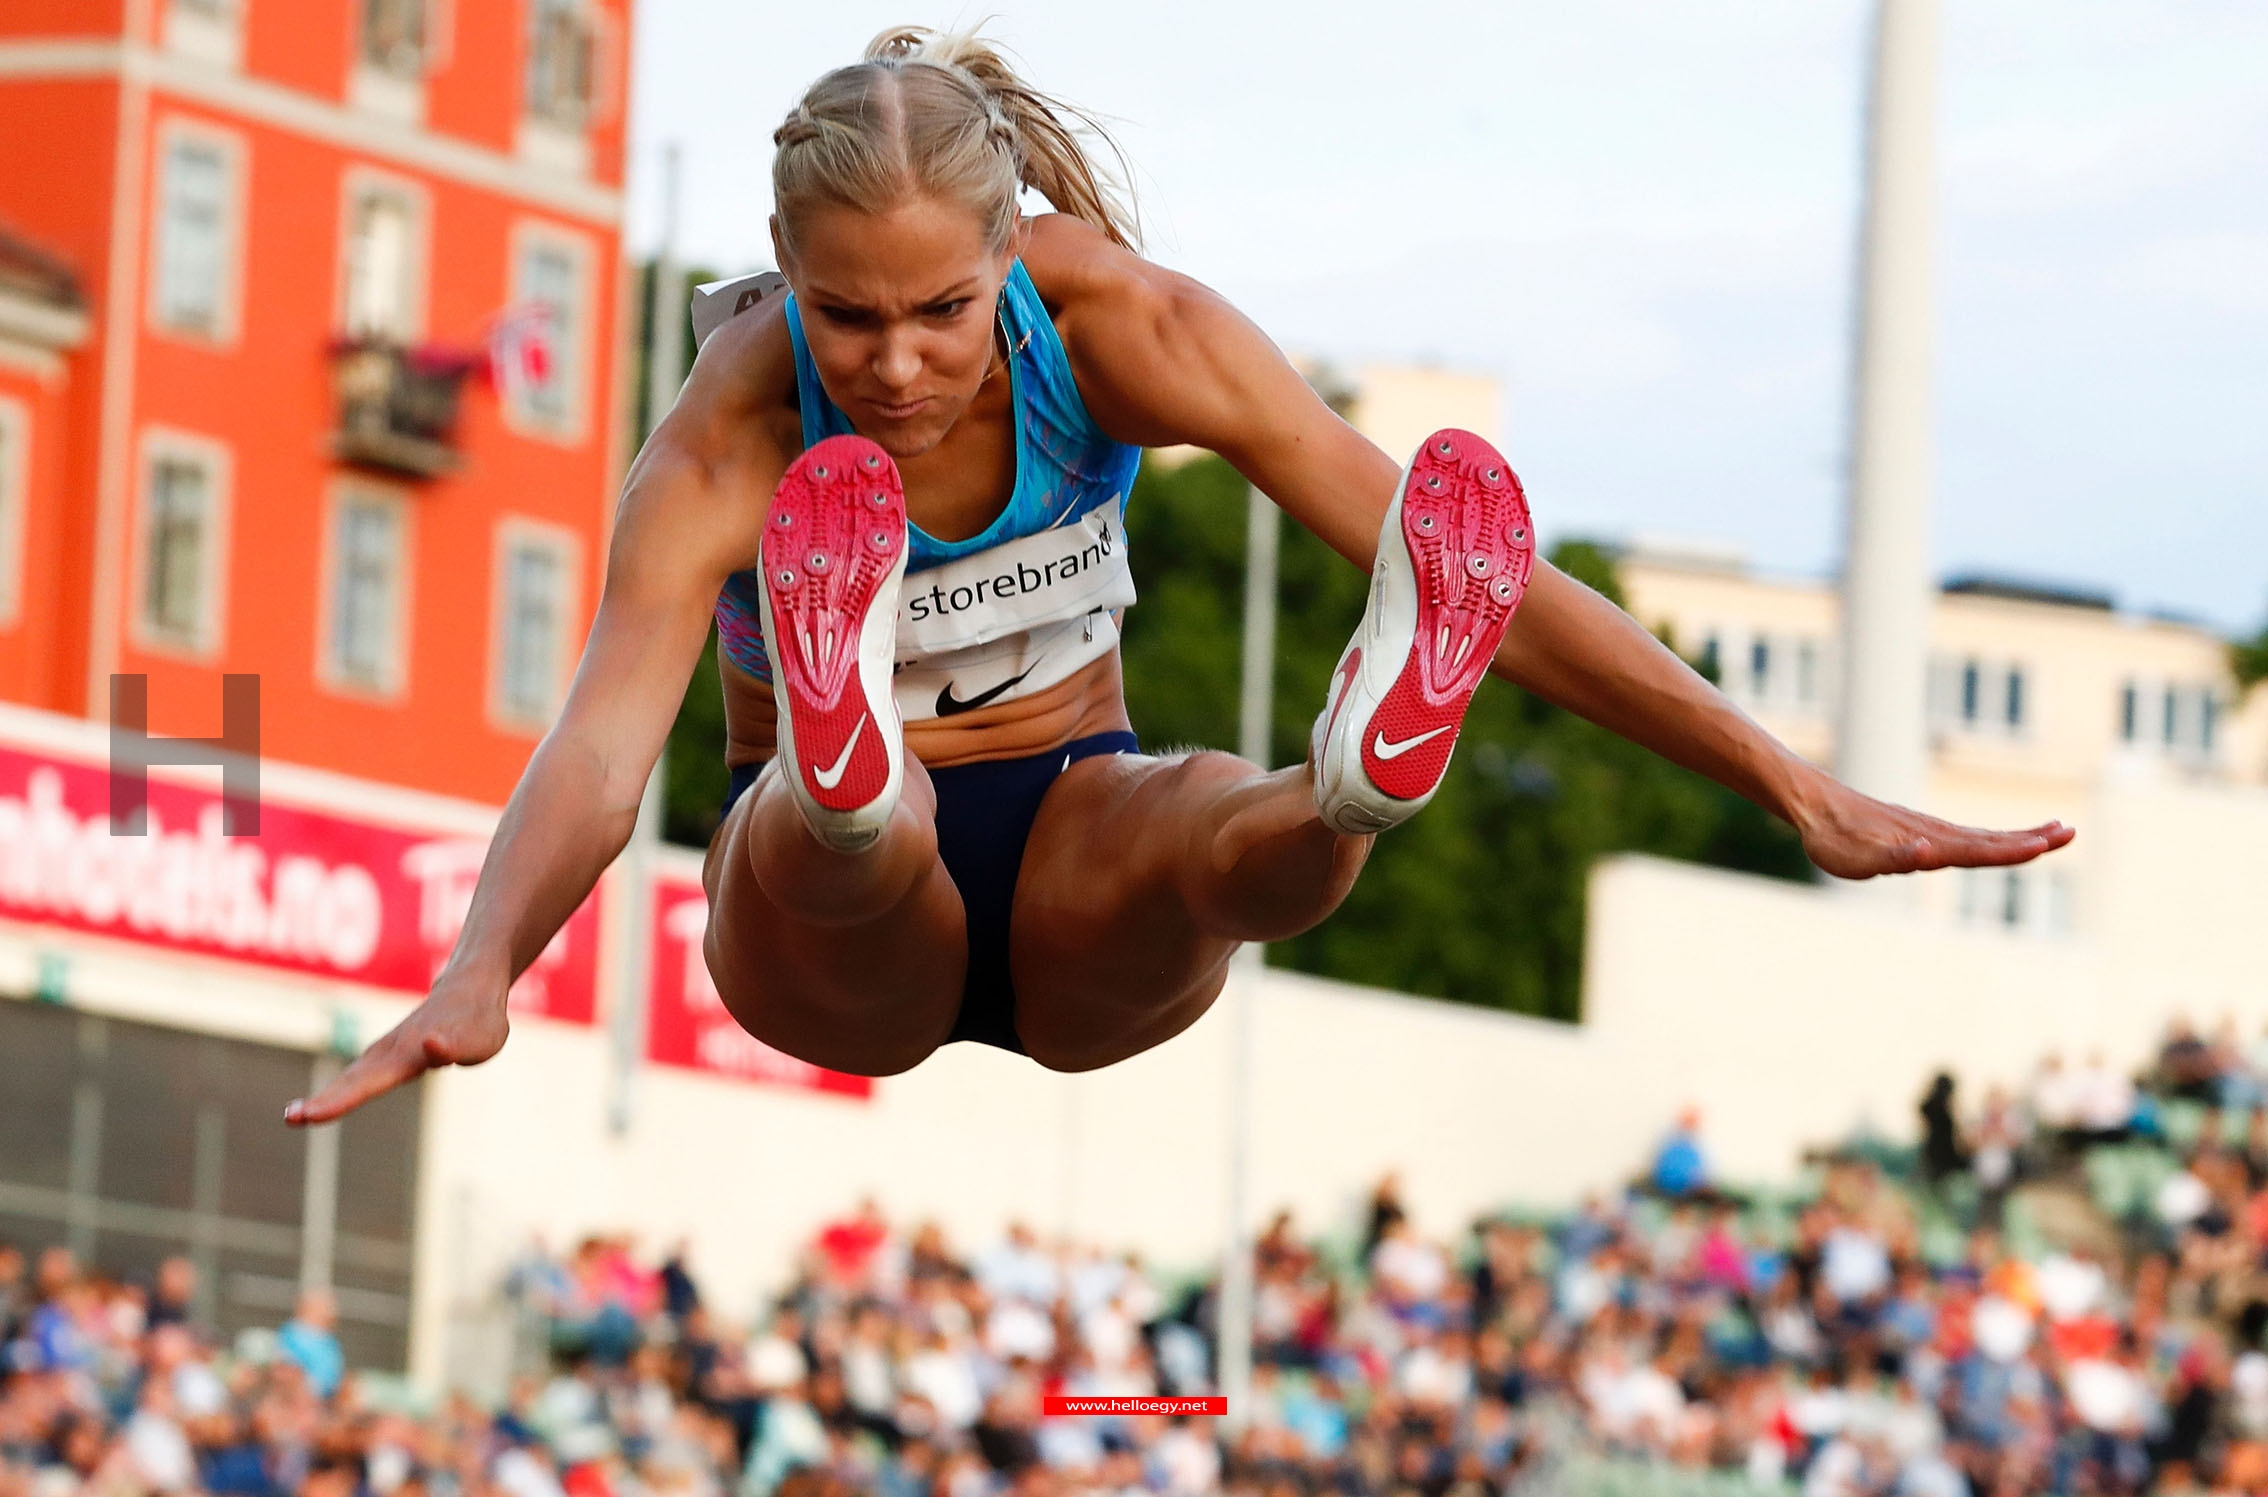 Second placed Darya Klishina (ANA) competes in the women's long jump at the Golden League Bislett Games at Bislett stadium in Olso on June 15,2017.  AFP